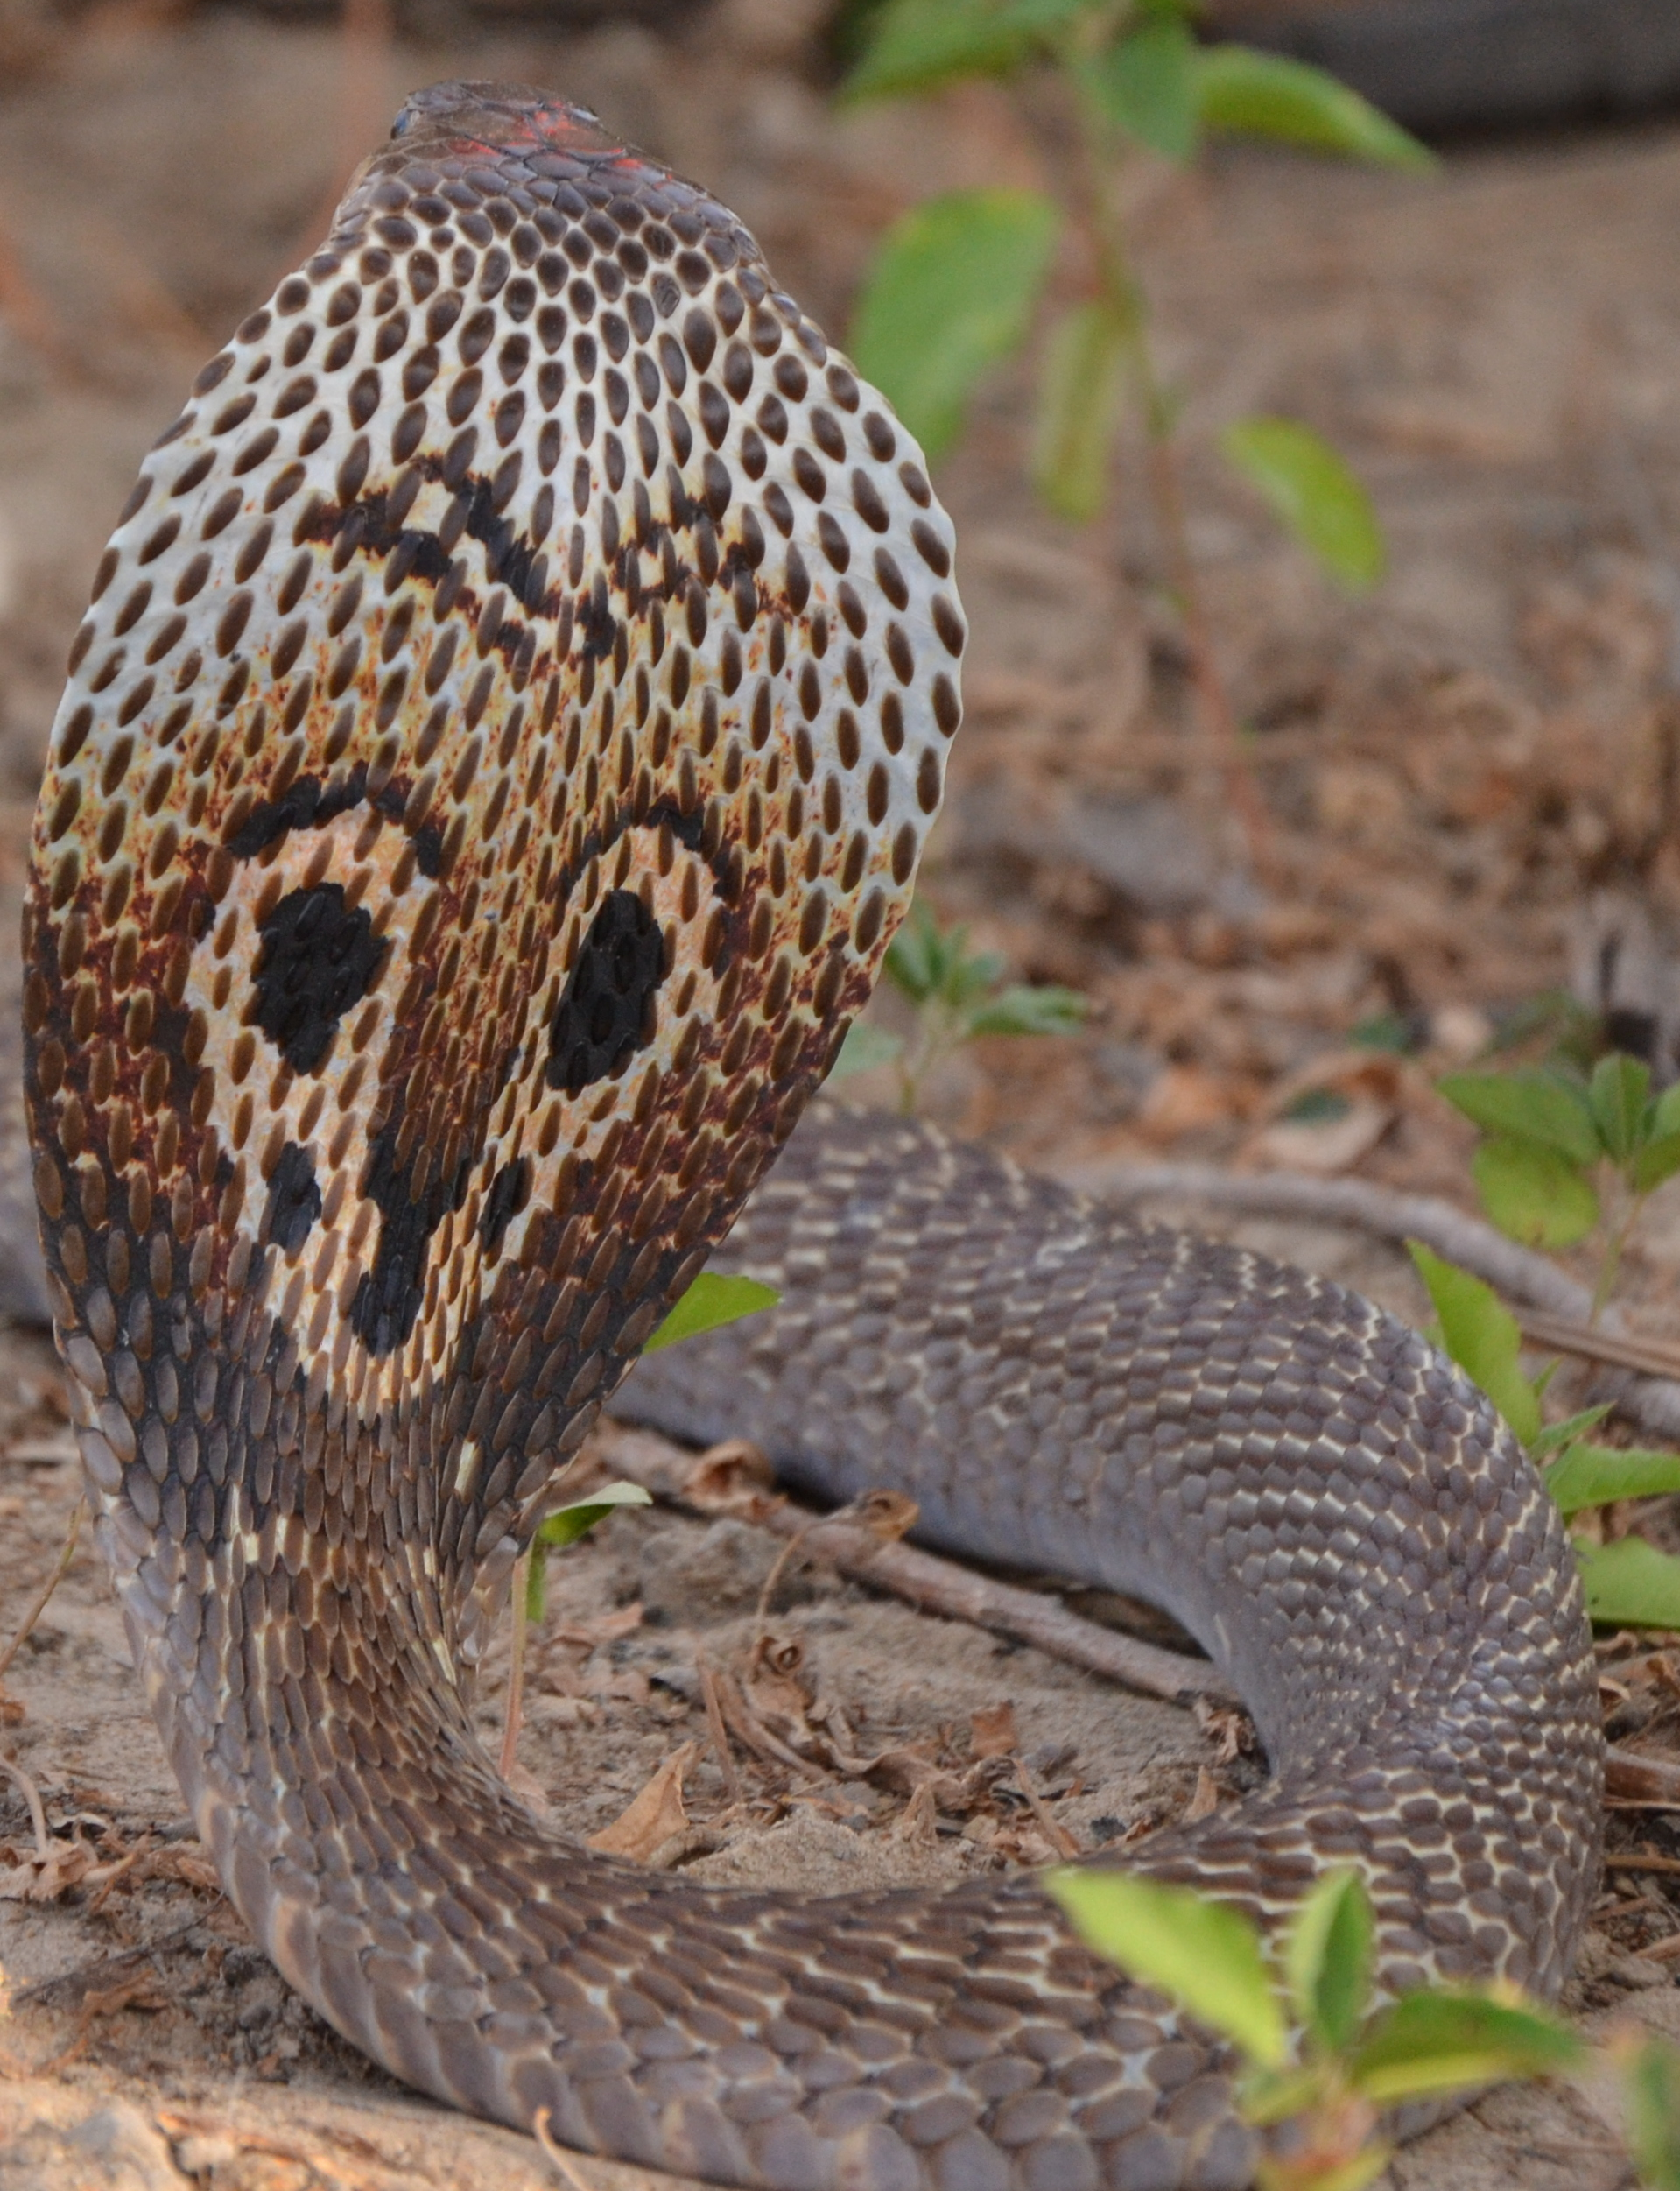 How Do Snakes Get Food